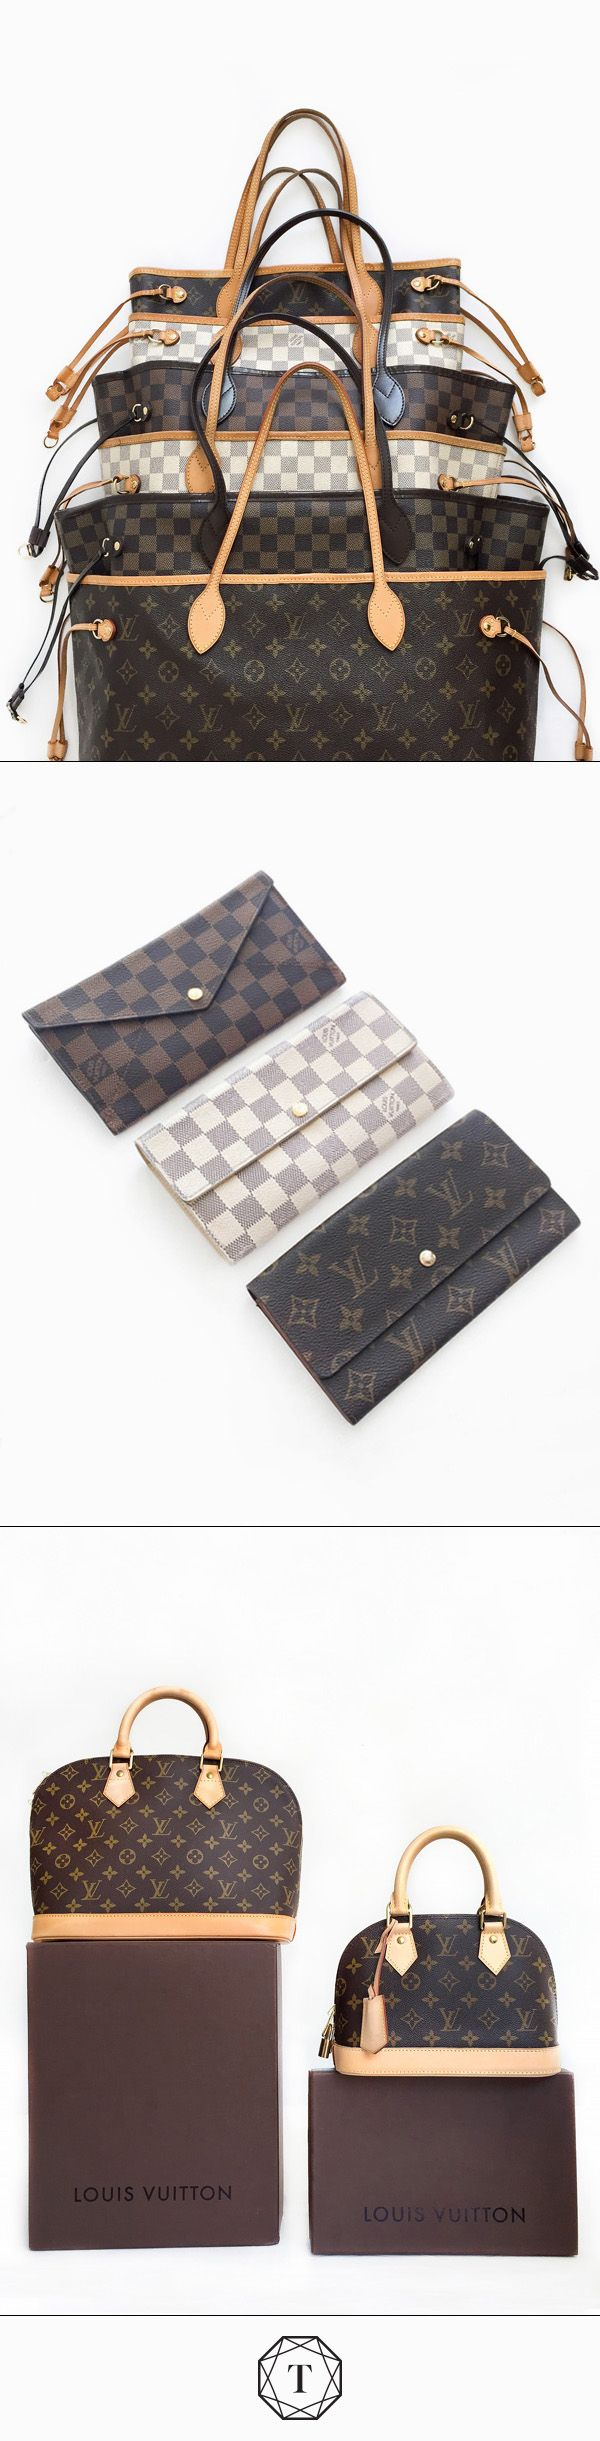 Discover: Thousands upon thousands gorgeous, authentic pre-owned Louis Vuitton pieces. Score a treasure from another woman's closet *and* an amazing deal - up to 90% off. Only on Tradesy.